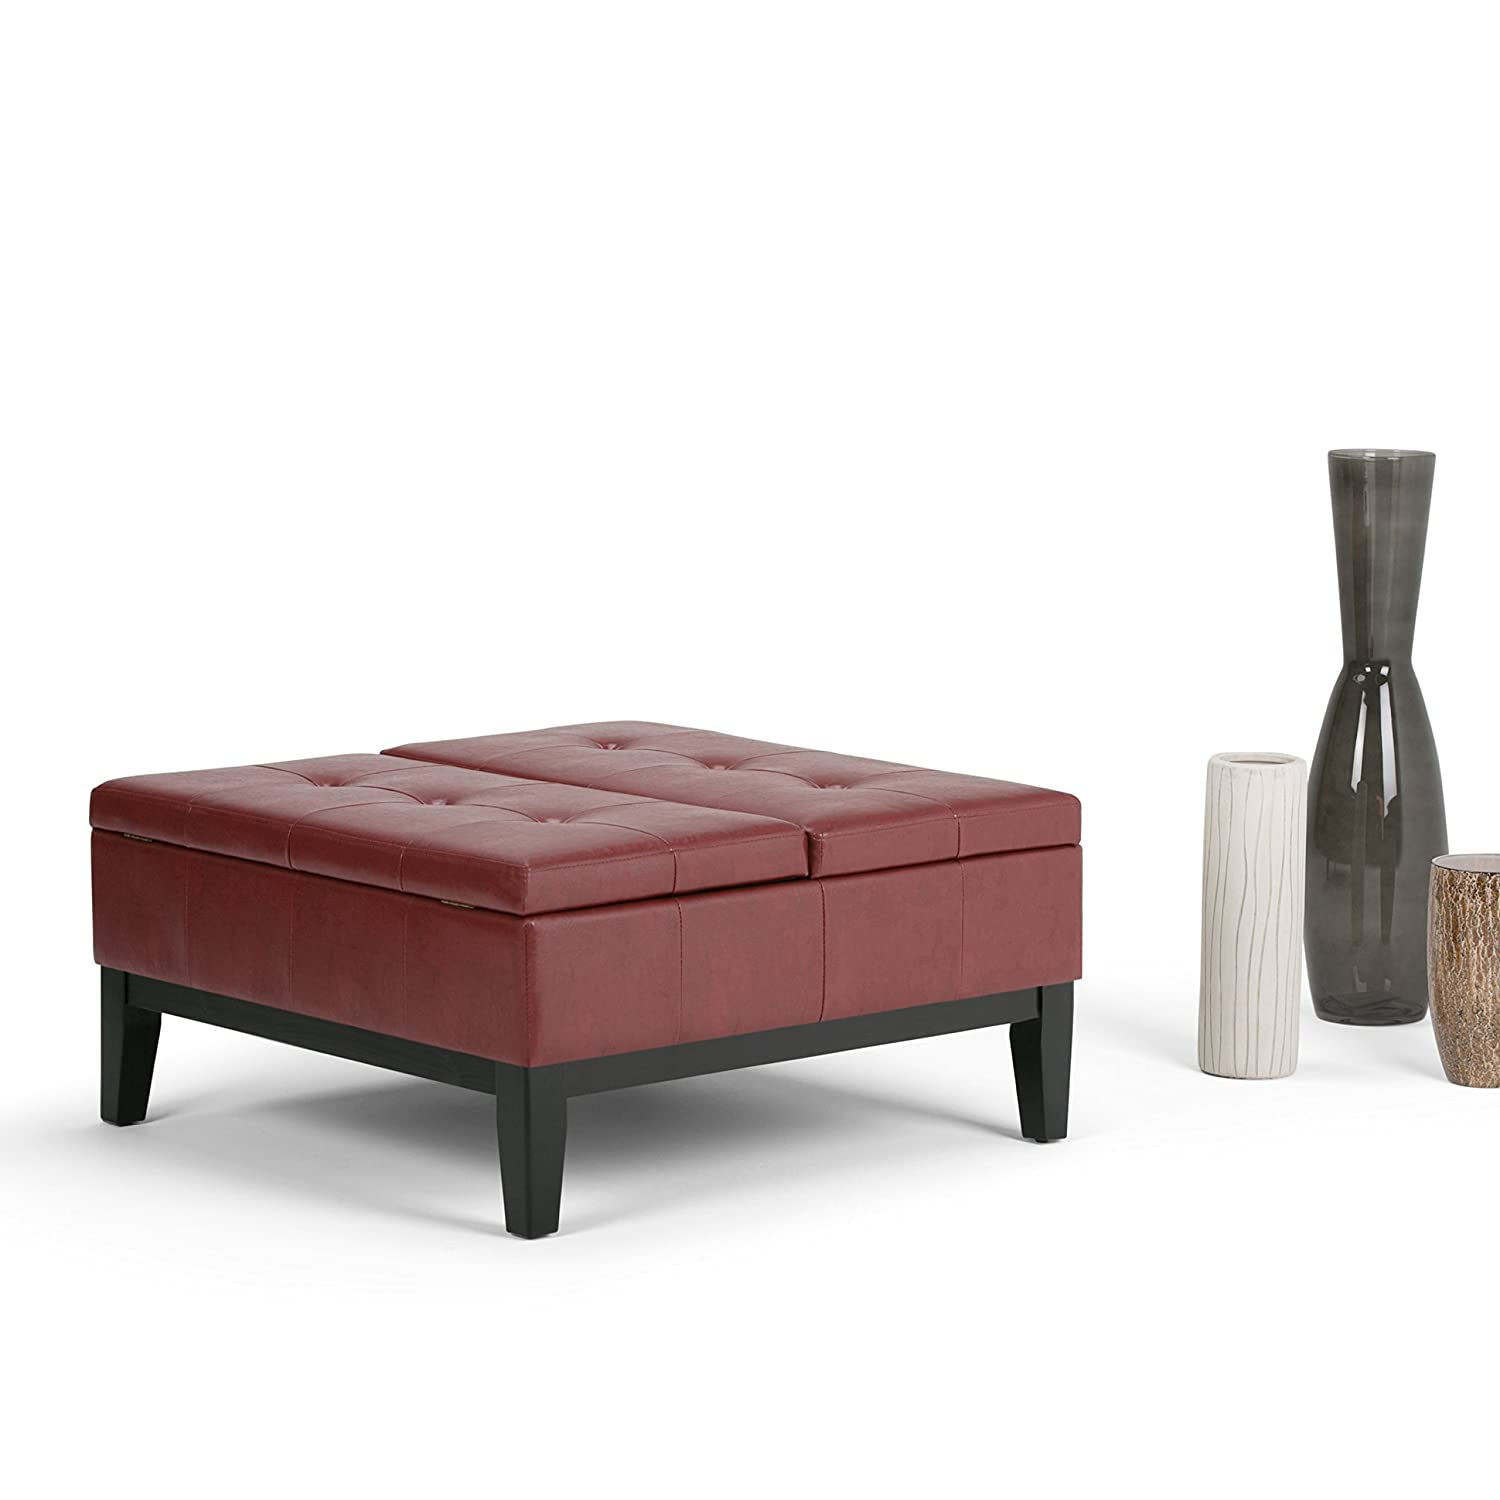 Amazon.com: Simpli Home Dover Square Coffee Table Ottoman With Split Lift  Up Lid, Radicchio Red: Kitchen U0026 Dining